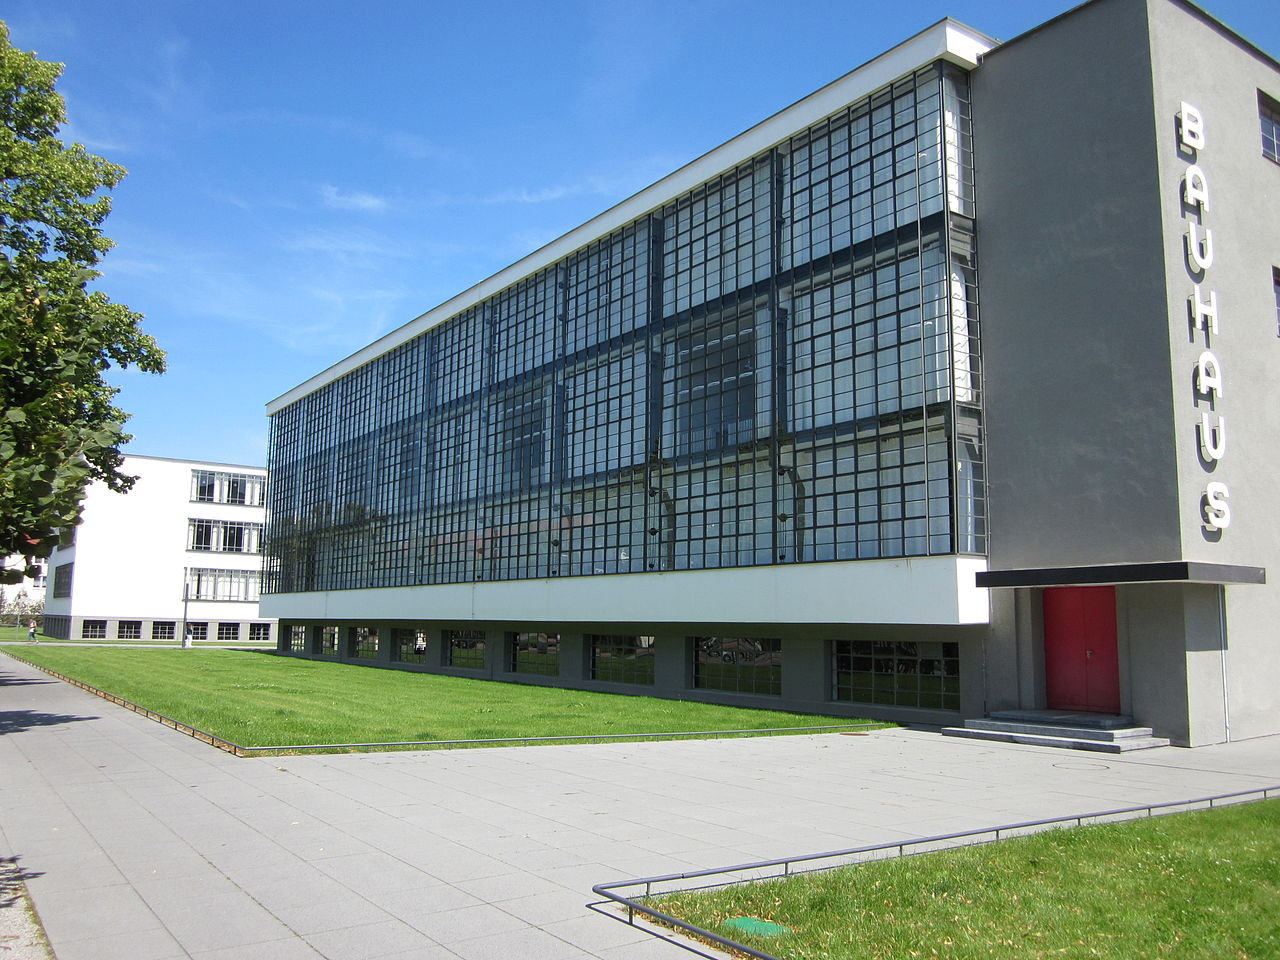 Discovering the Bauhaus